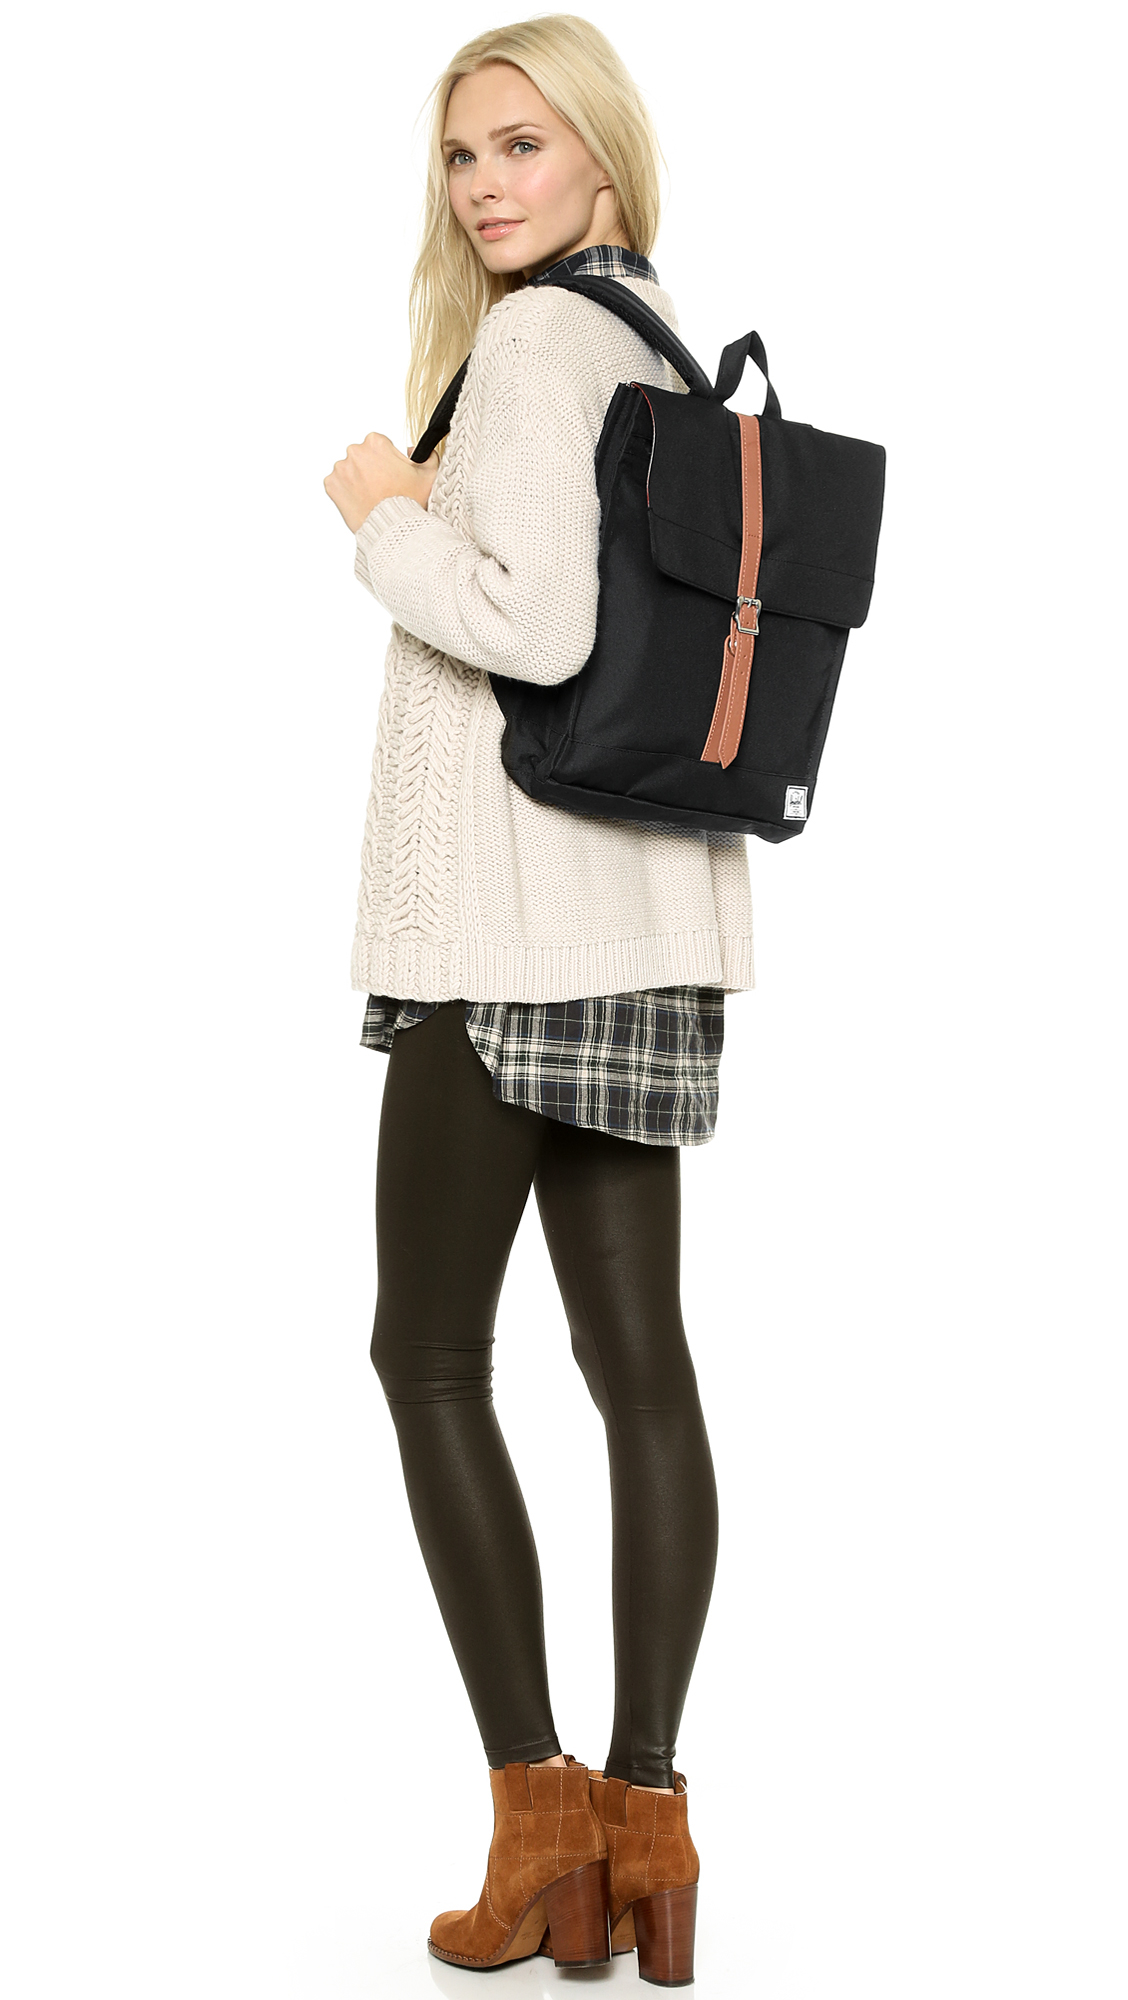 2a3d68437292 Lyst - Herschel Supply Co. City Backpack in Black